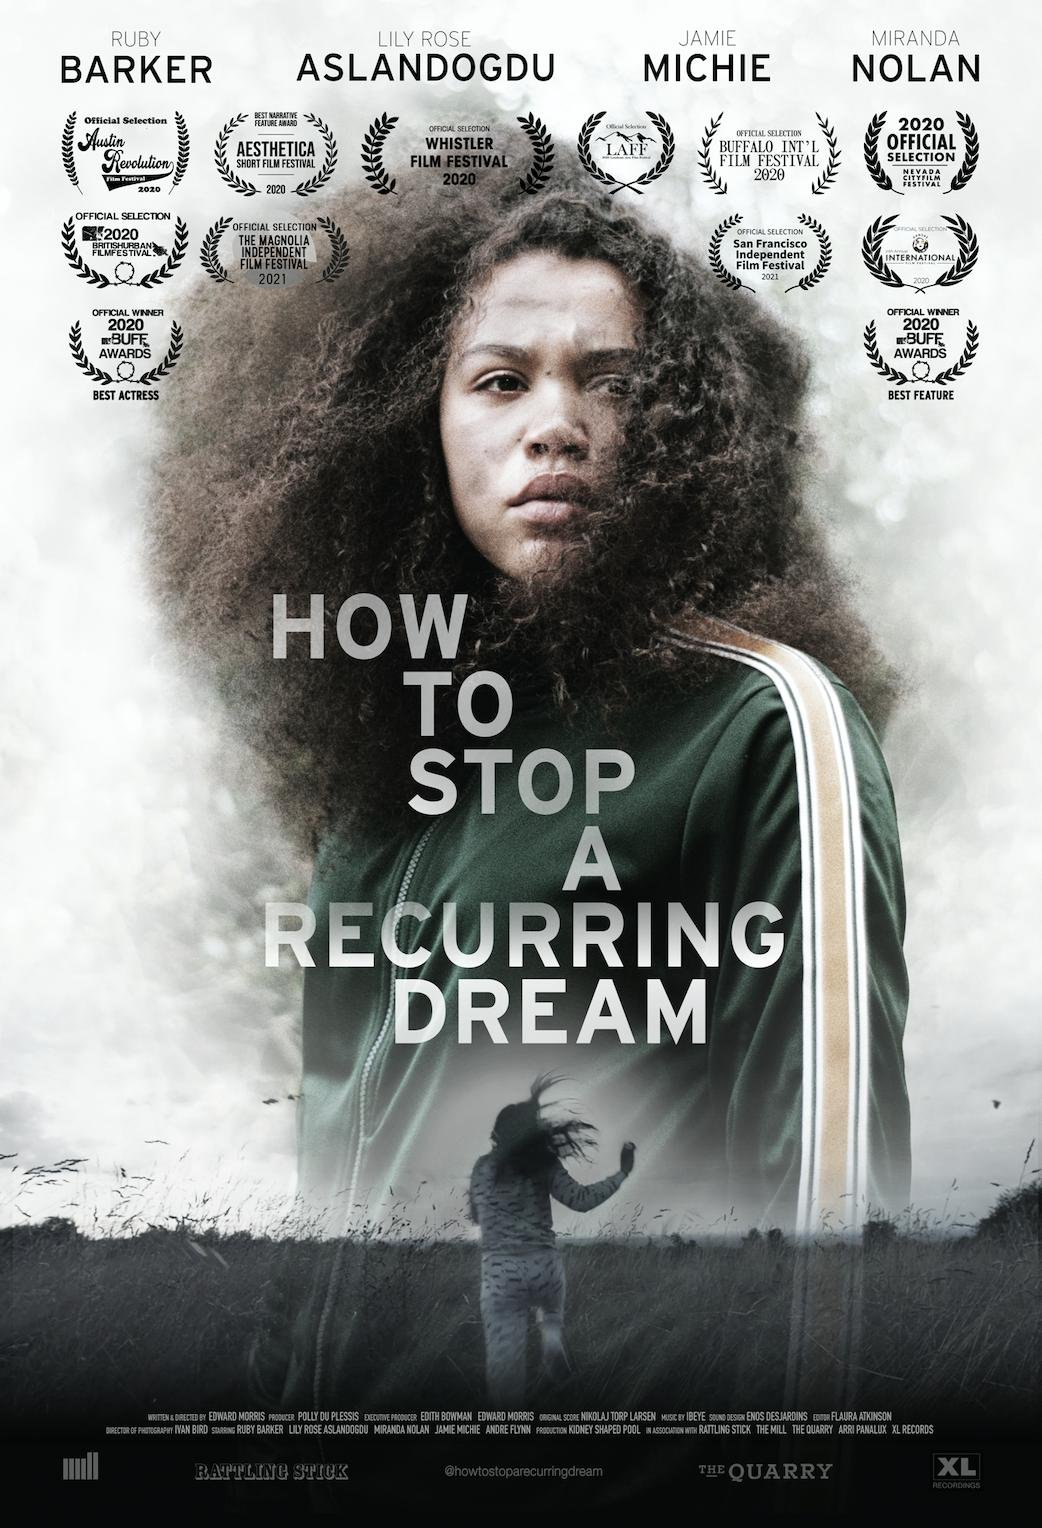 How to Stop a Recurring Dream poster image